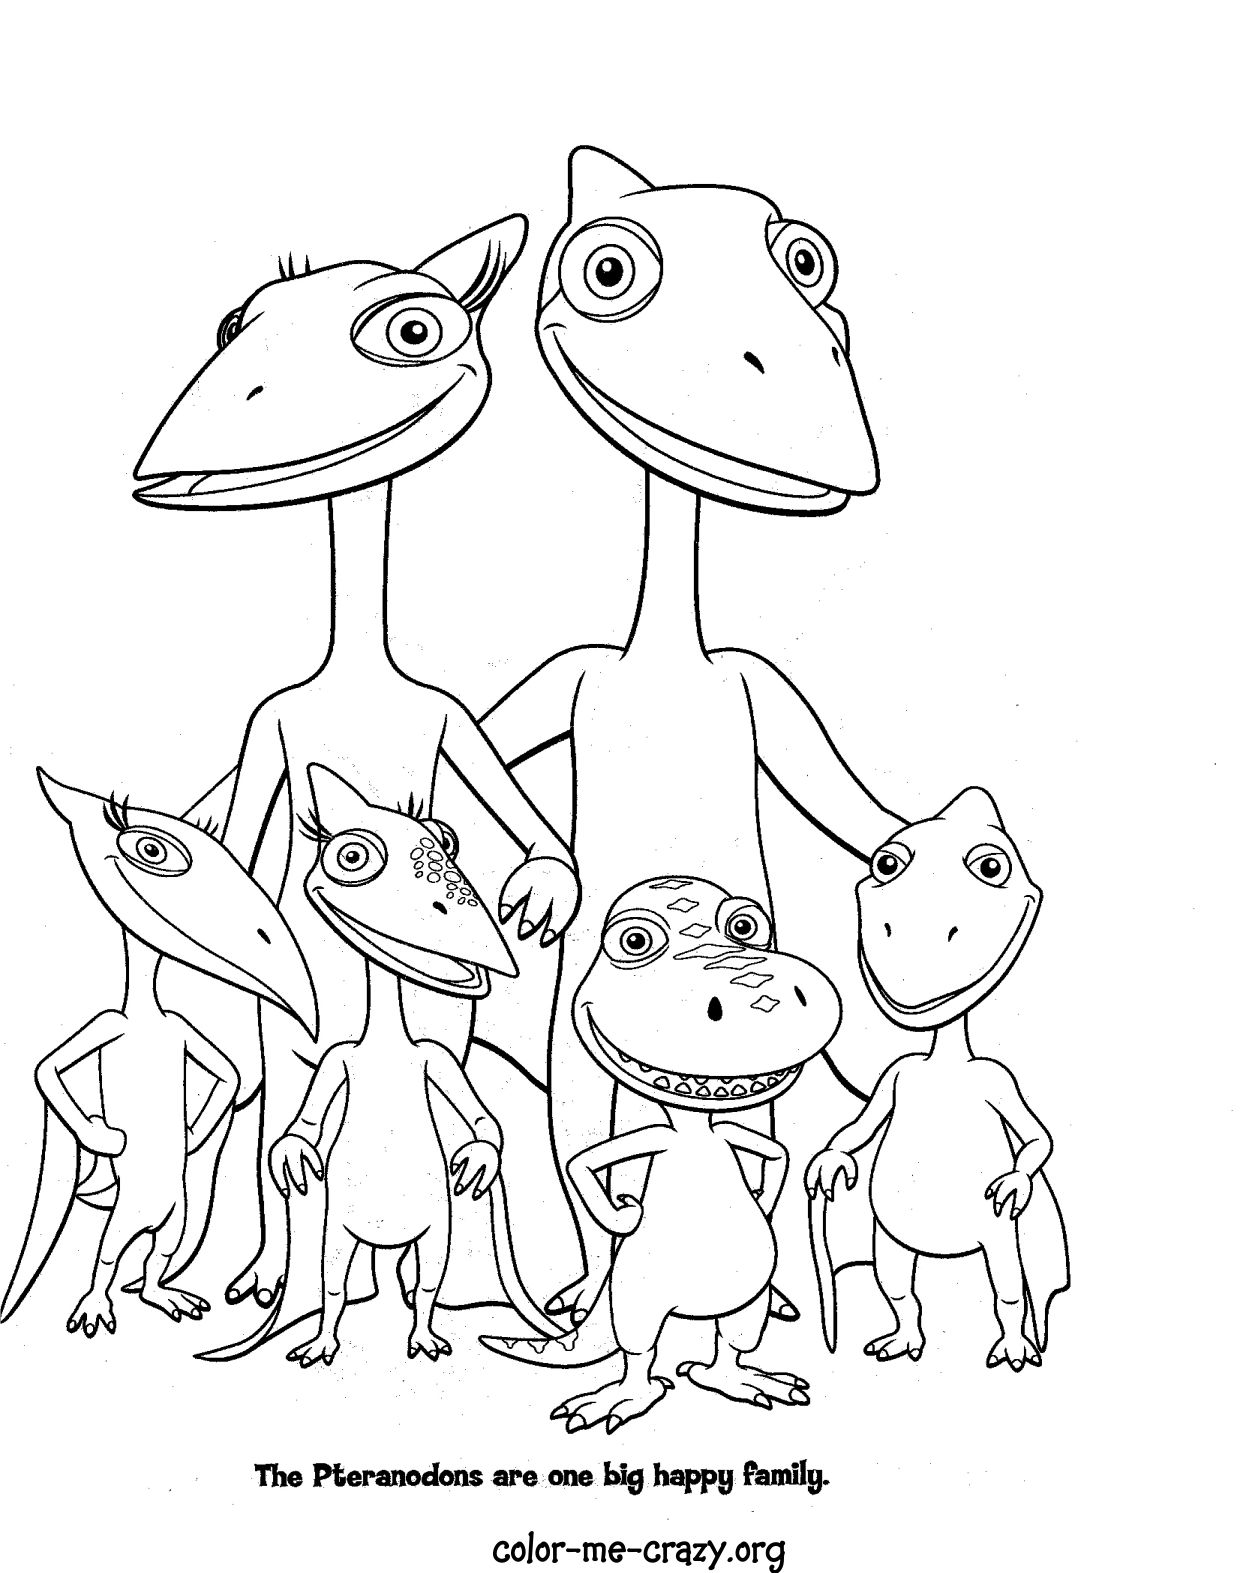 colouring dinosaur pictures dinosaurs pictures to color funny animal pictures colouring dinosaur